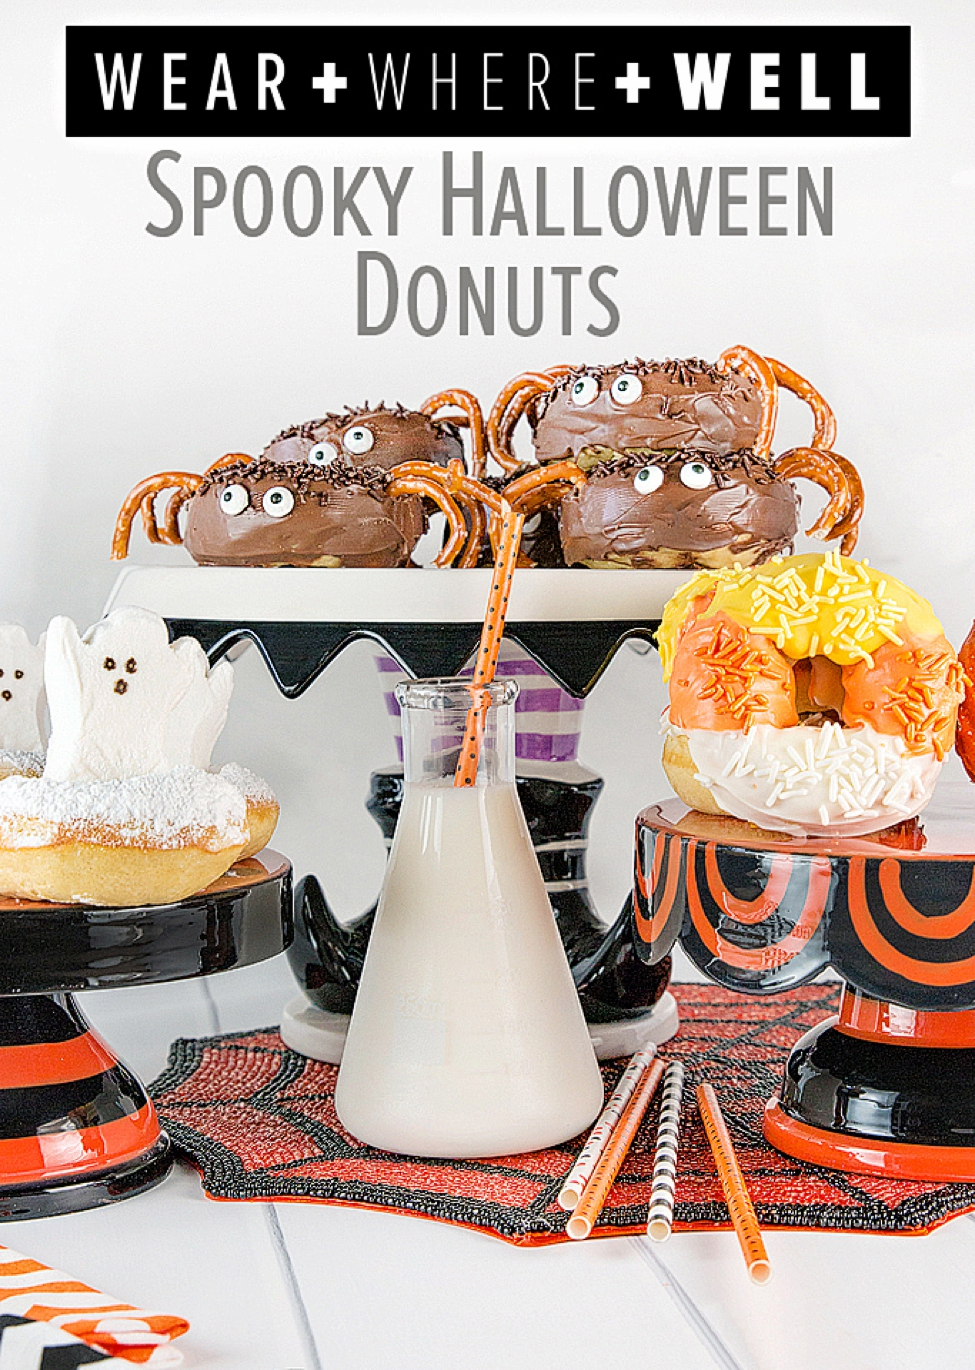 halloween donuts - how to make 4 spooky treats! - carrie colbert